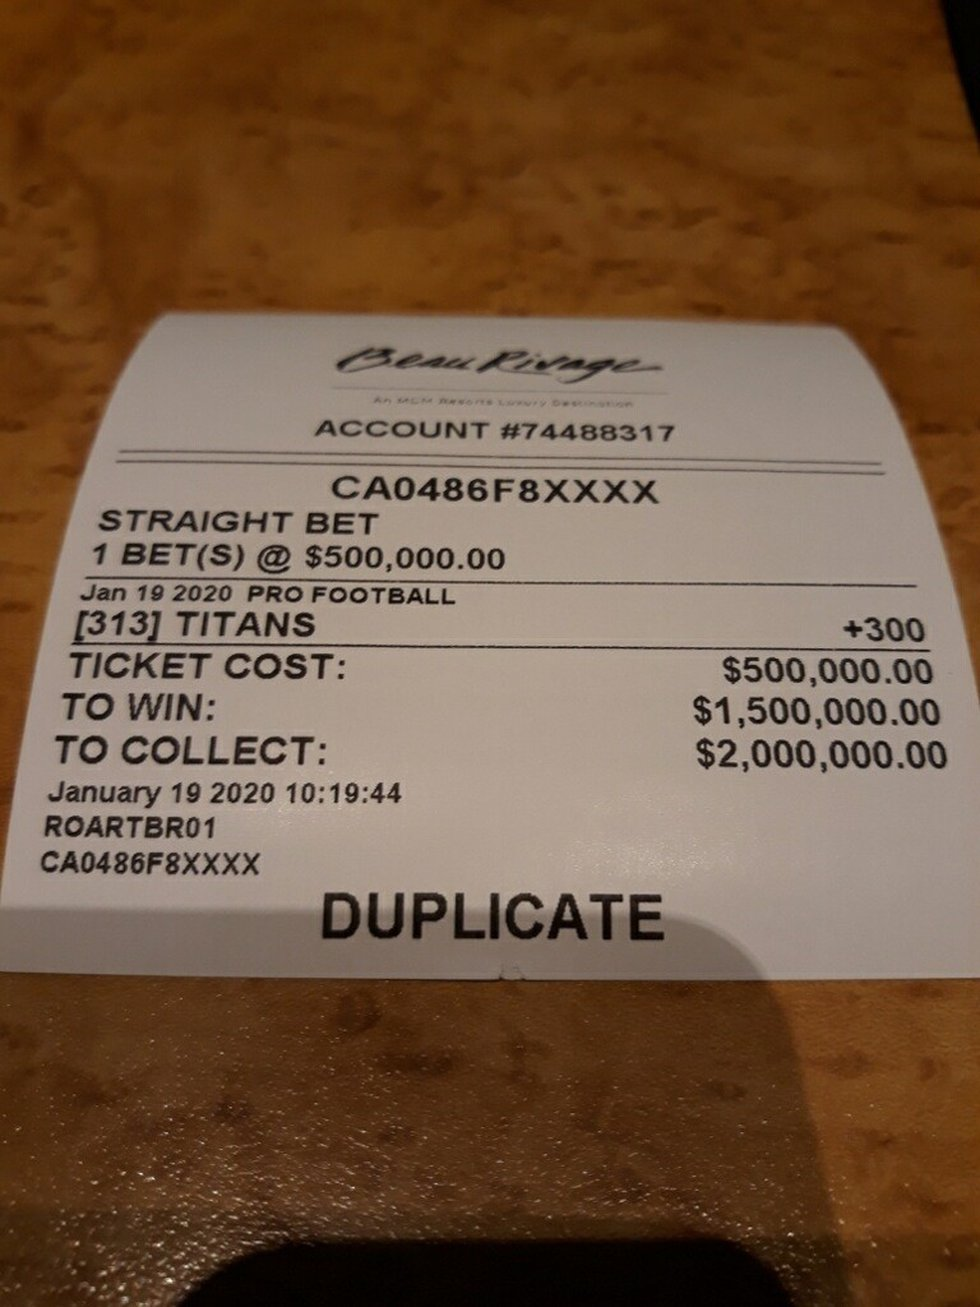 Mack laid down two 500,000 dollar bets in south Mississippi on the Titans beating the Chiefs.